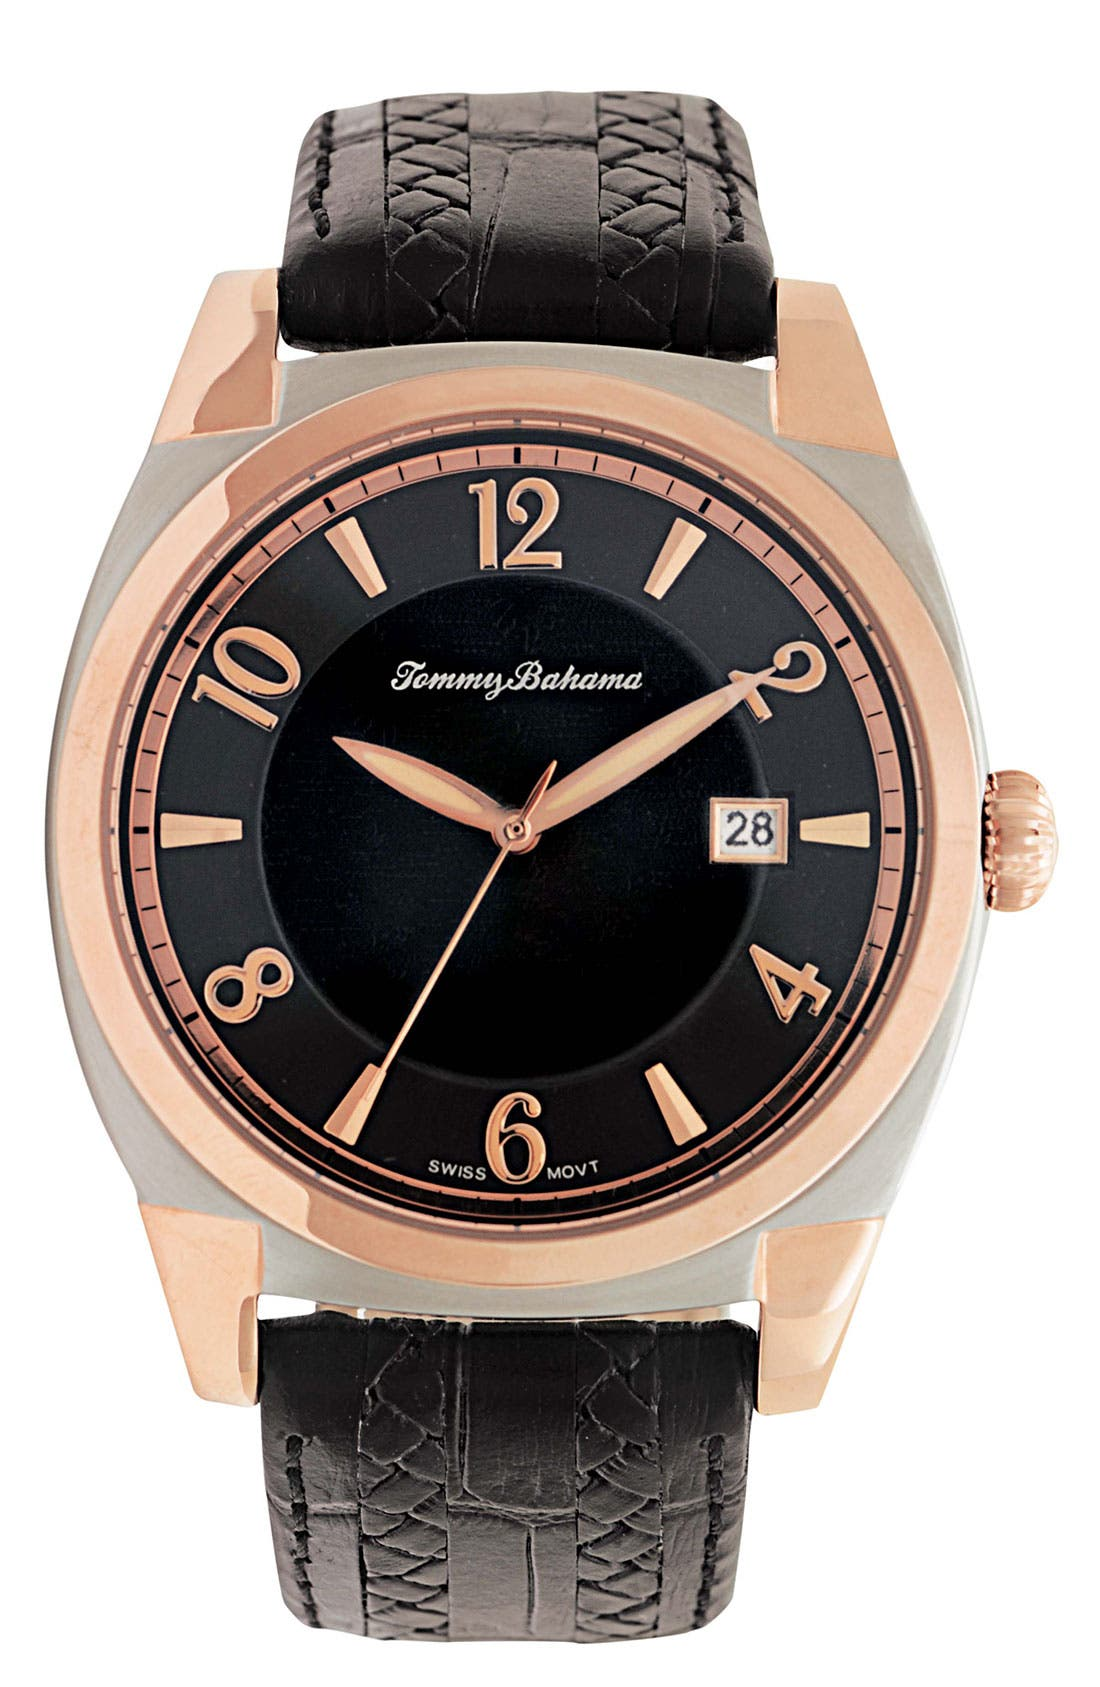 Alternate Image 1 Selected - Tommy Bahama 'Cubanito' Round Leather Strap Watch, 41mm x 51mm